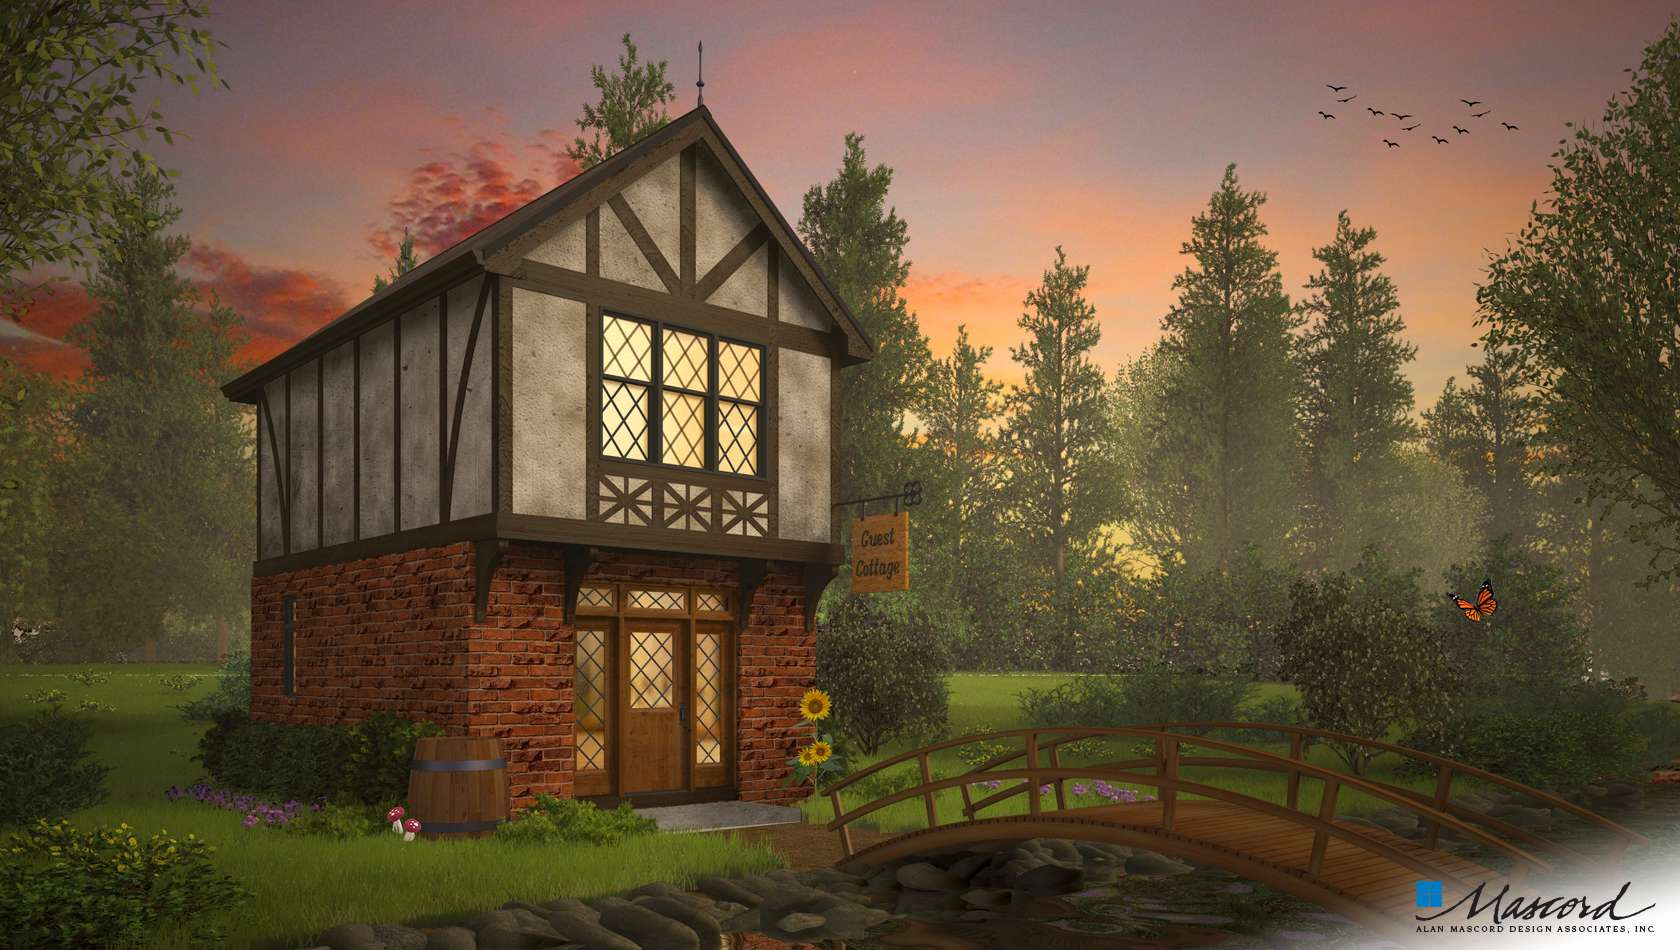 Main image for house plan 21150A: The King's Hollow